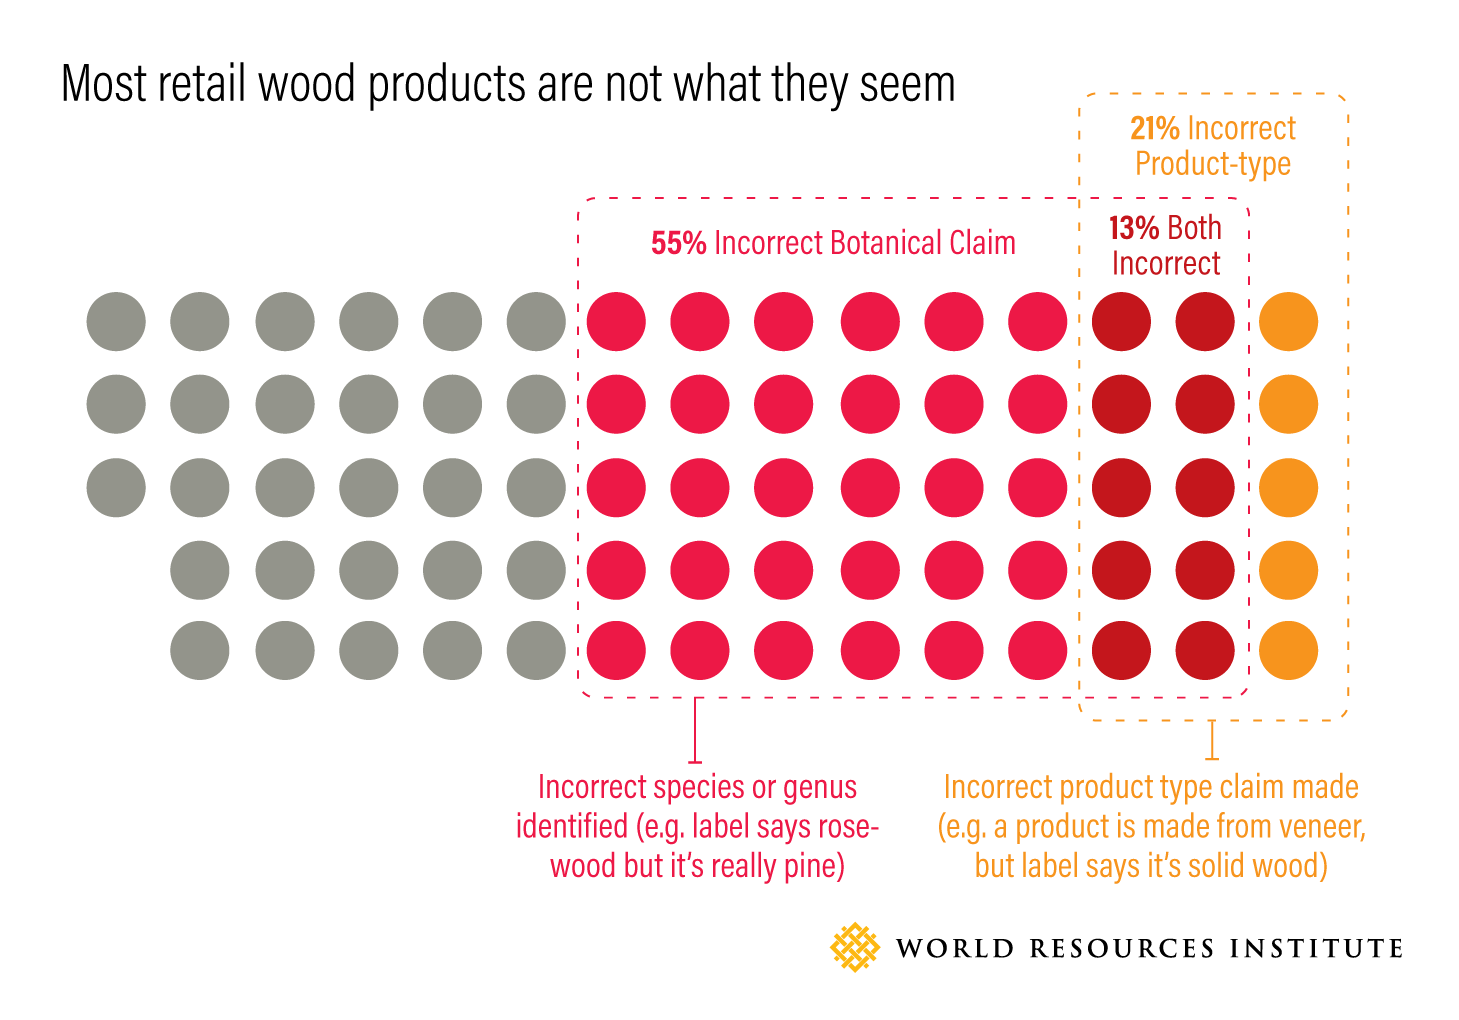 Most retail wood products are not what they seem